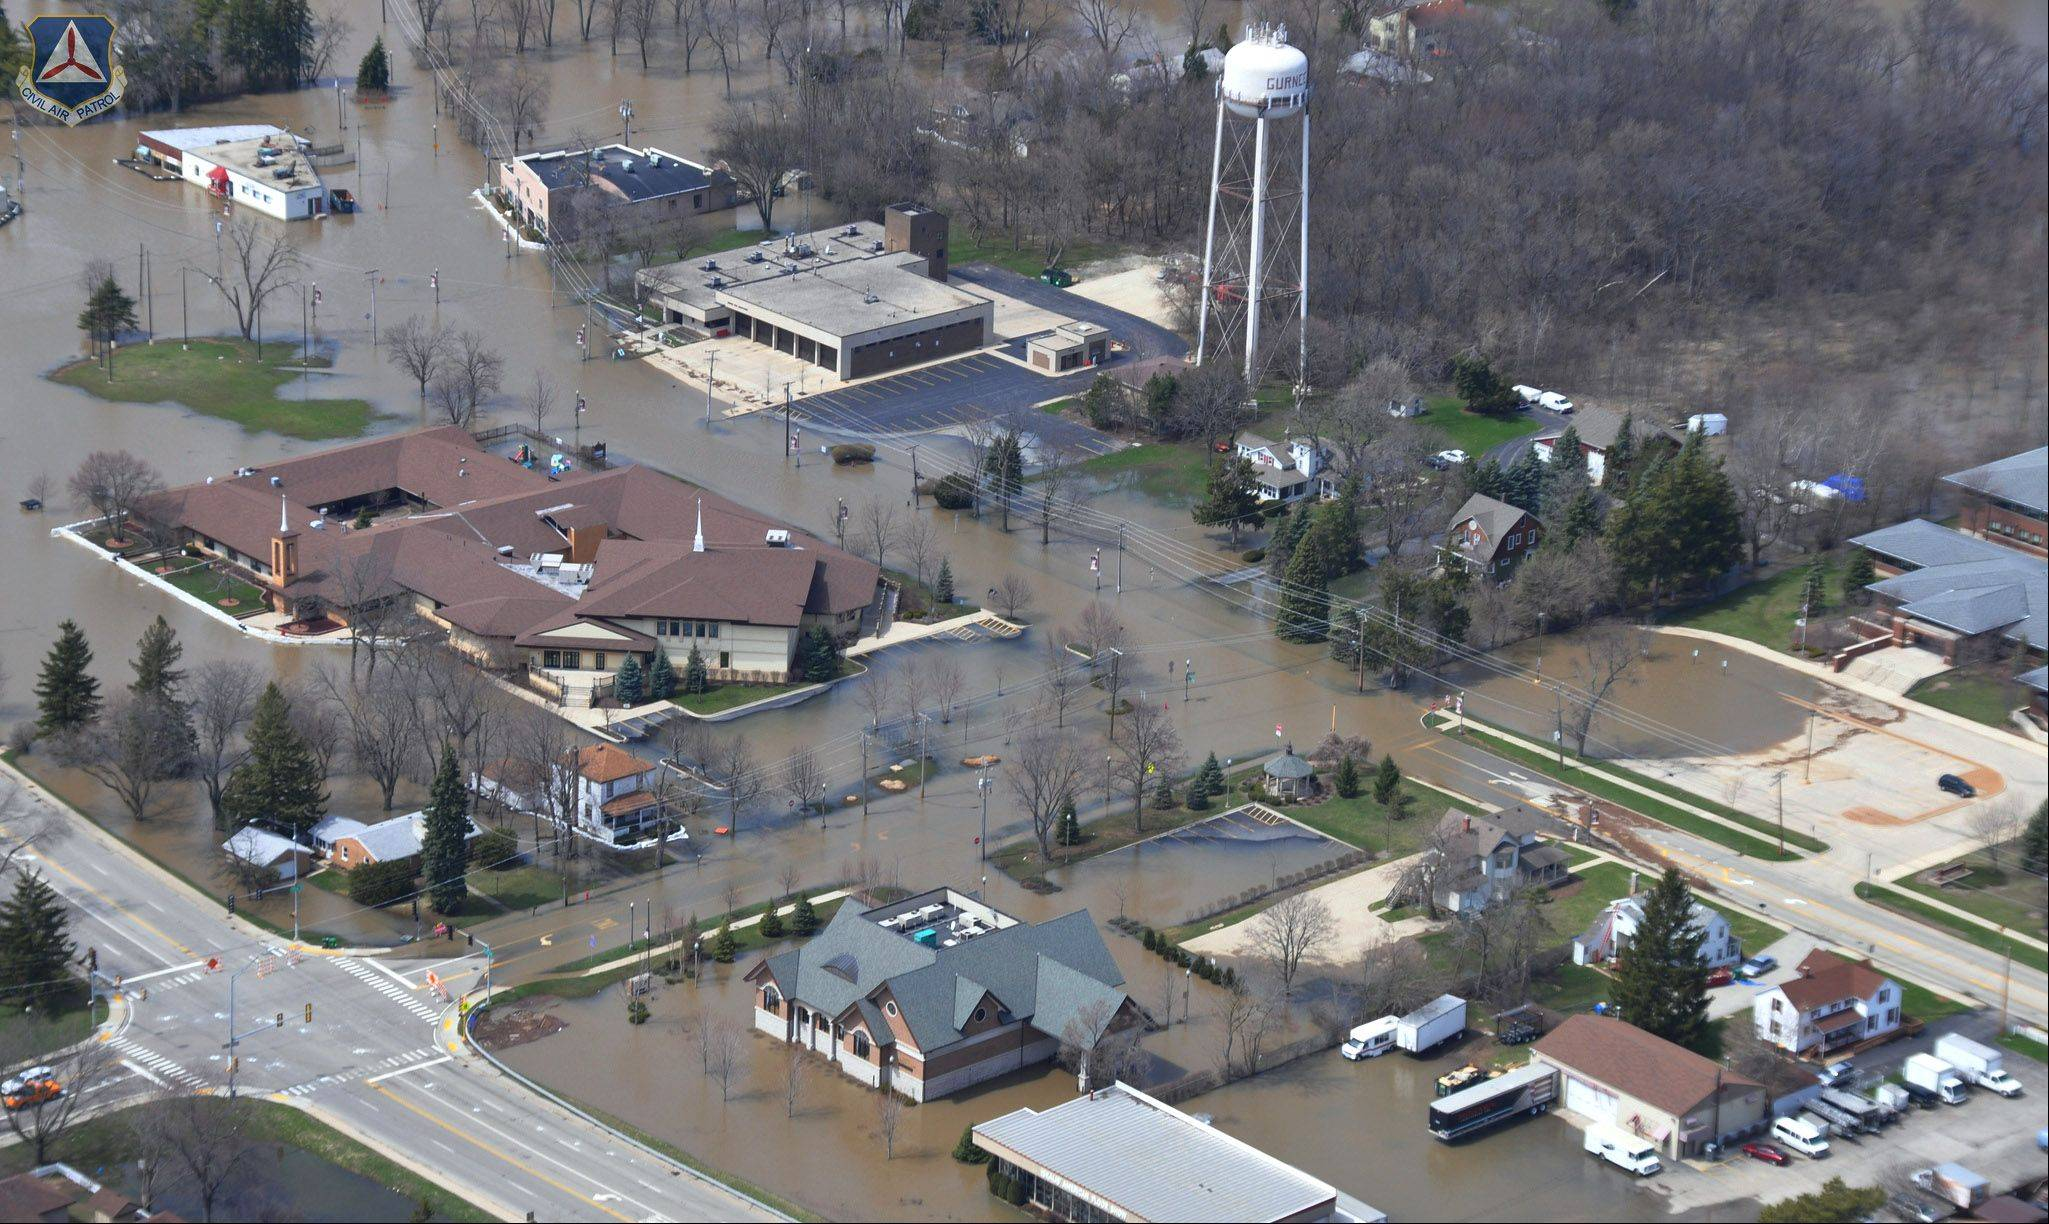 The Suburban Floods of 2013 by the numbers